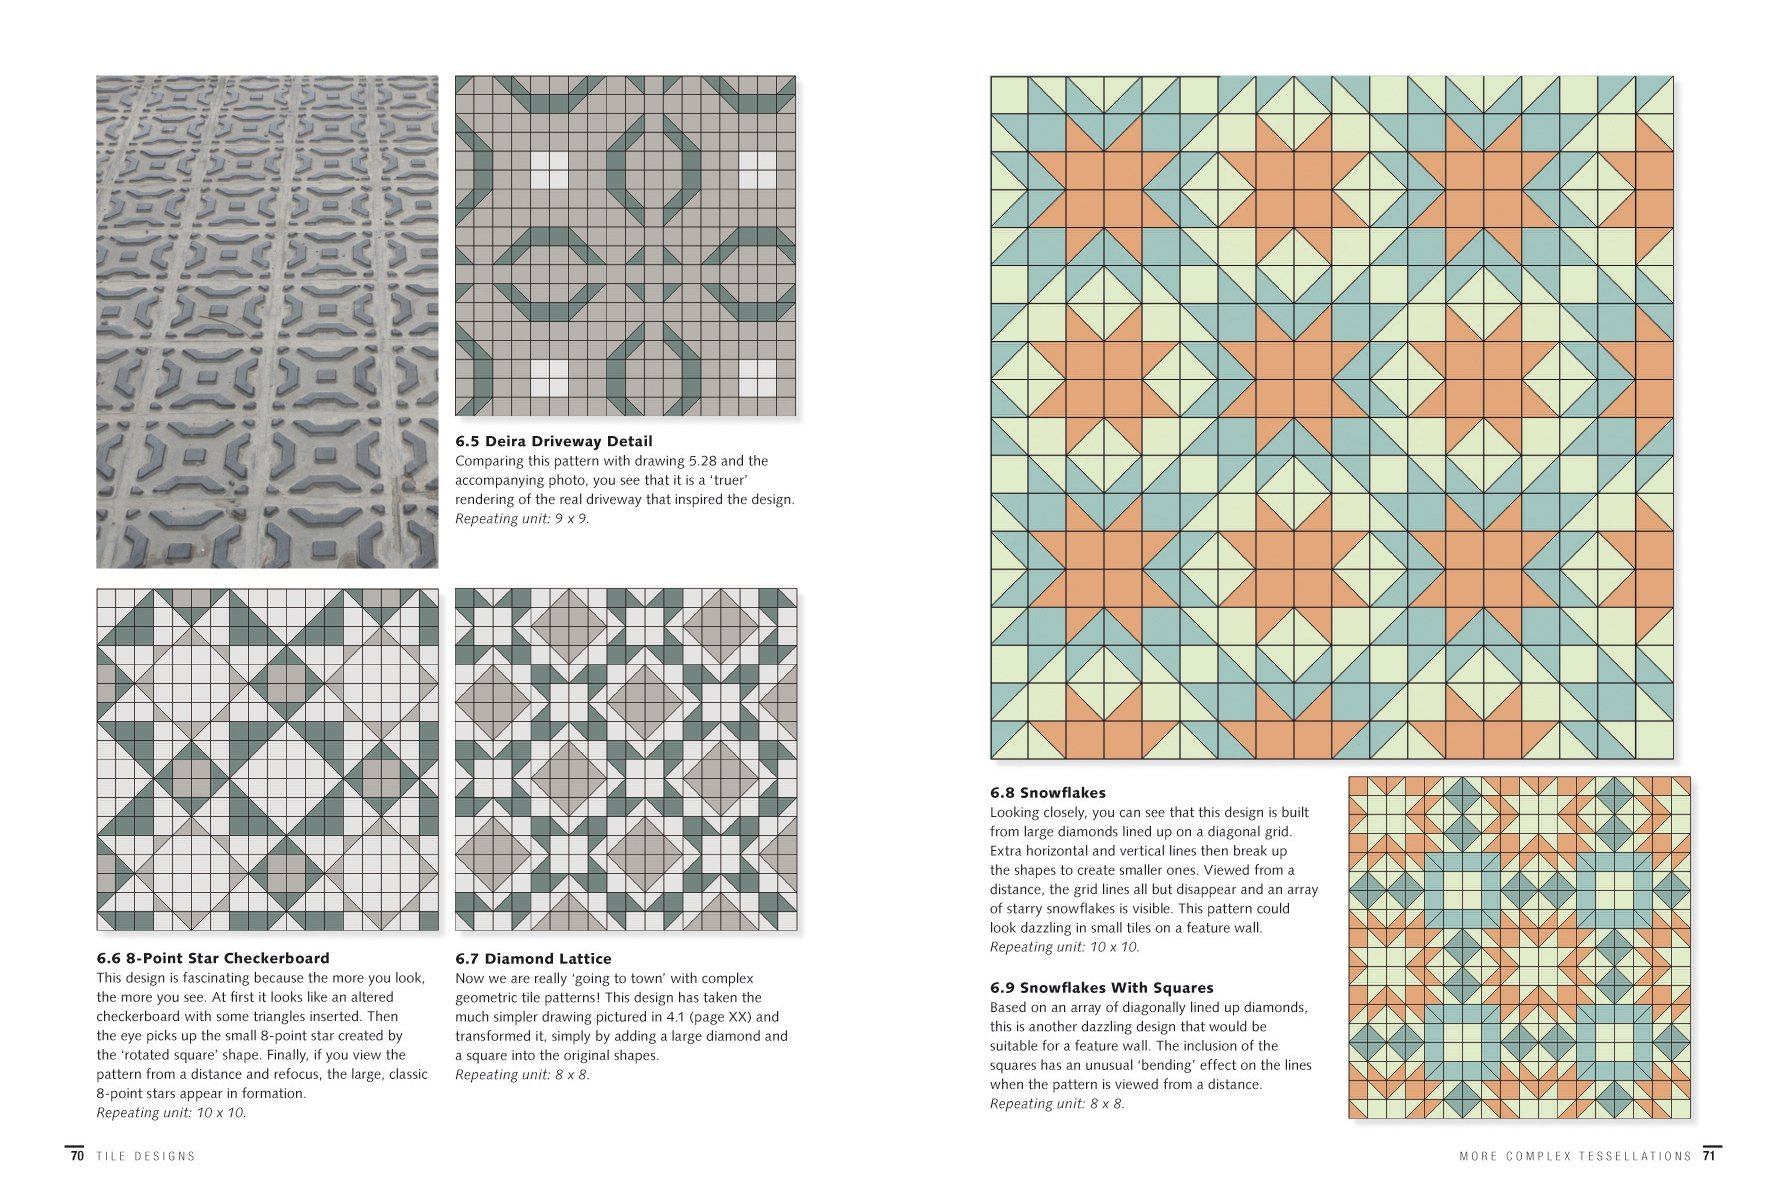 Tile Designs: More Than 100 Ready-to-Use Tiling Patterns: Leila Adam ...